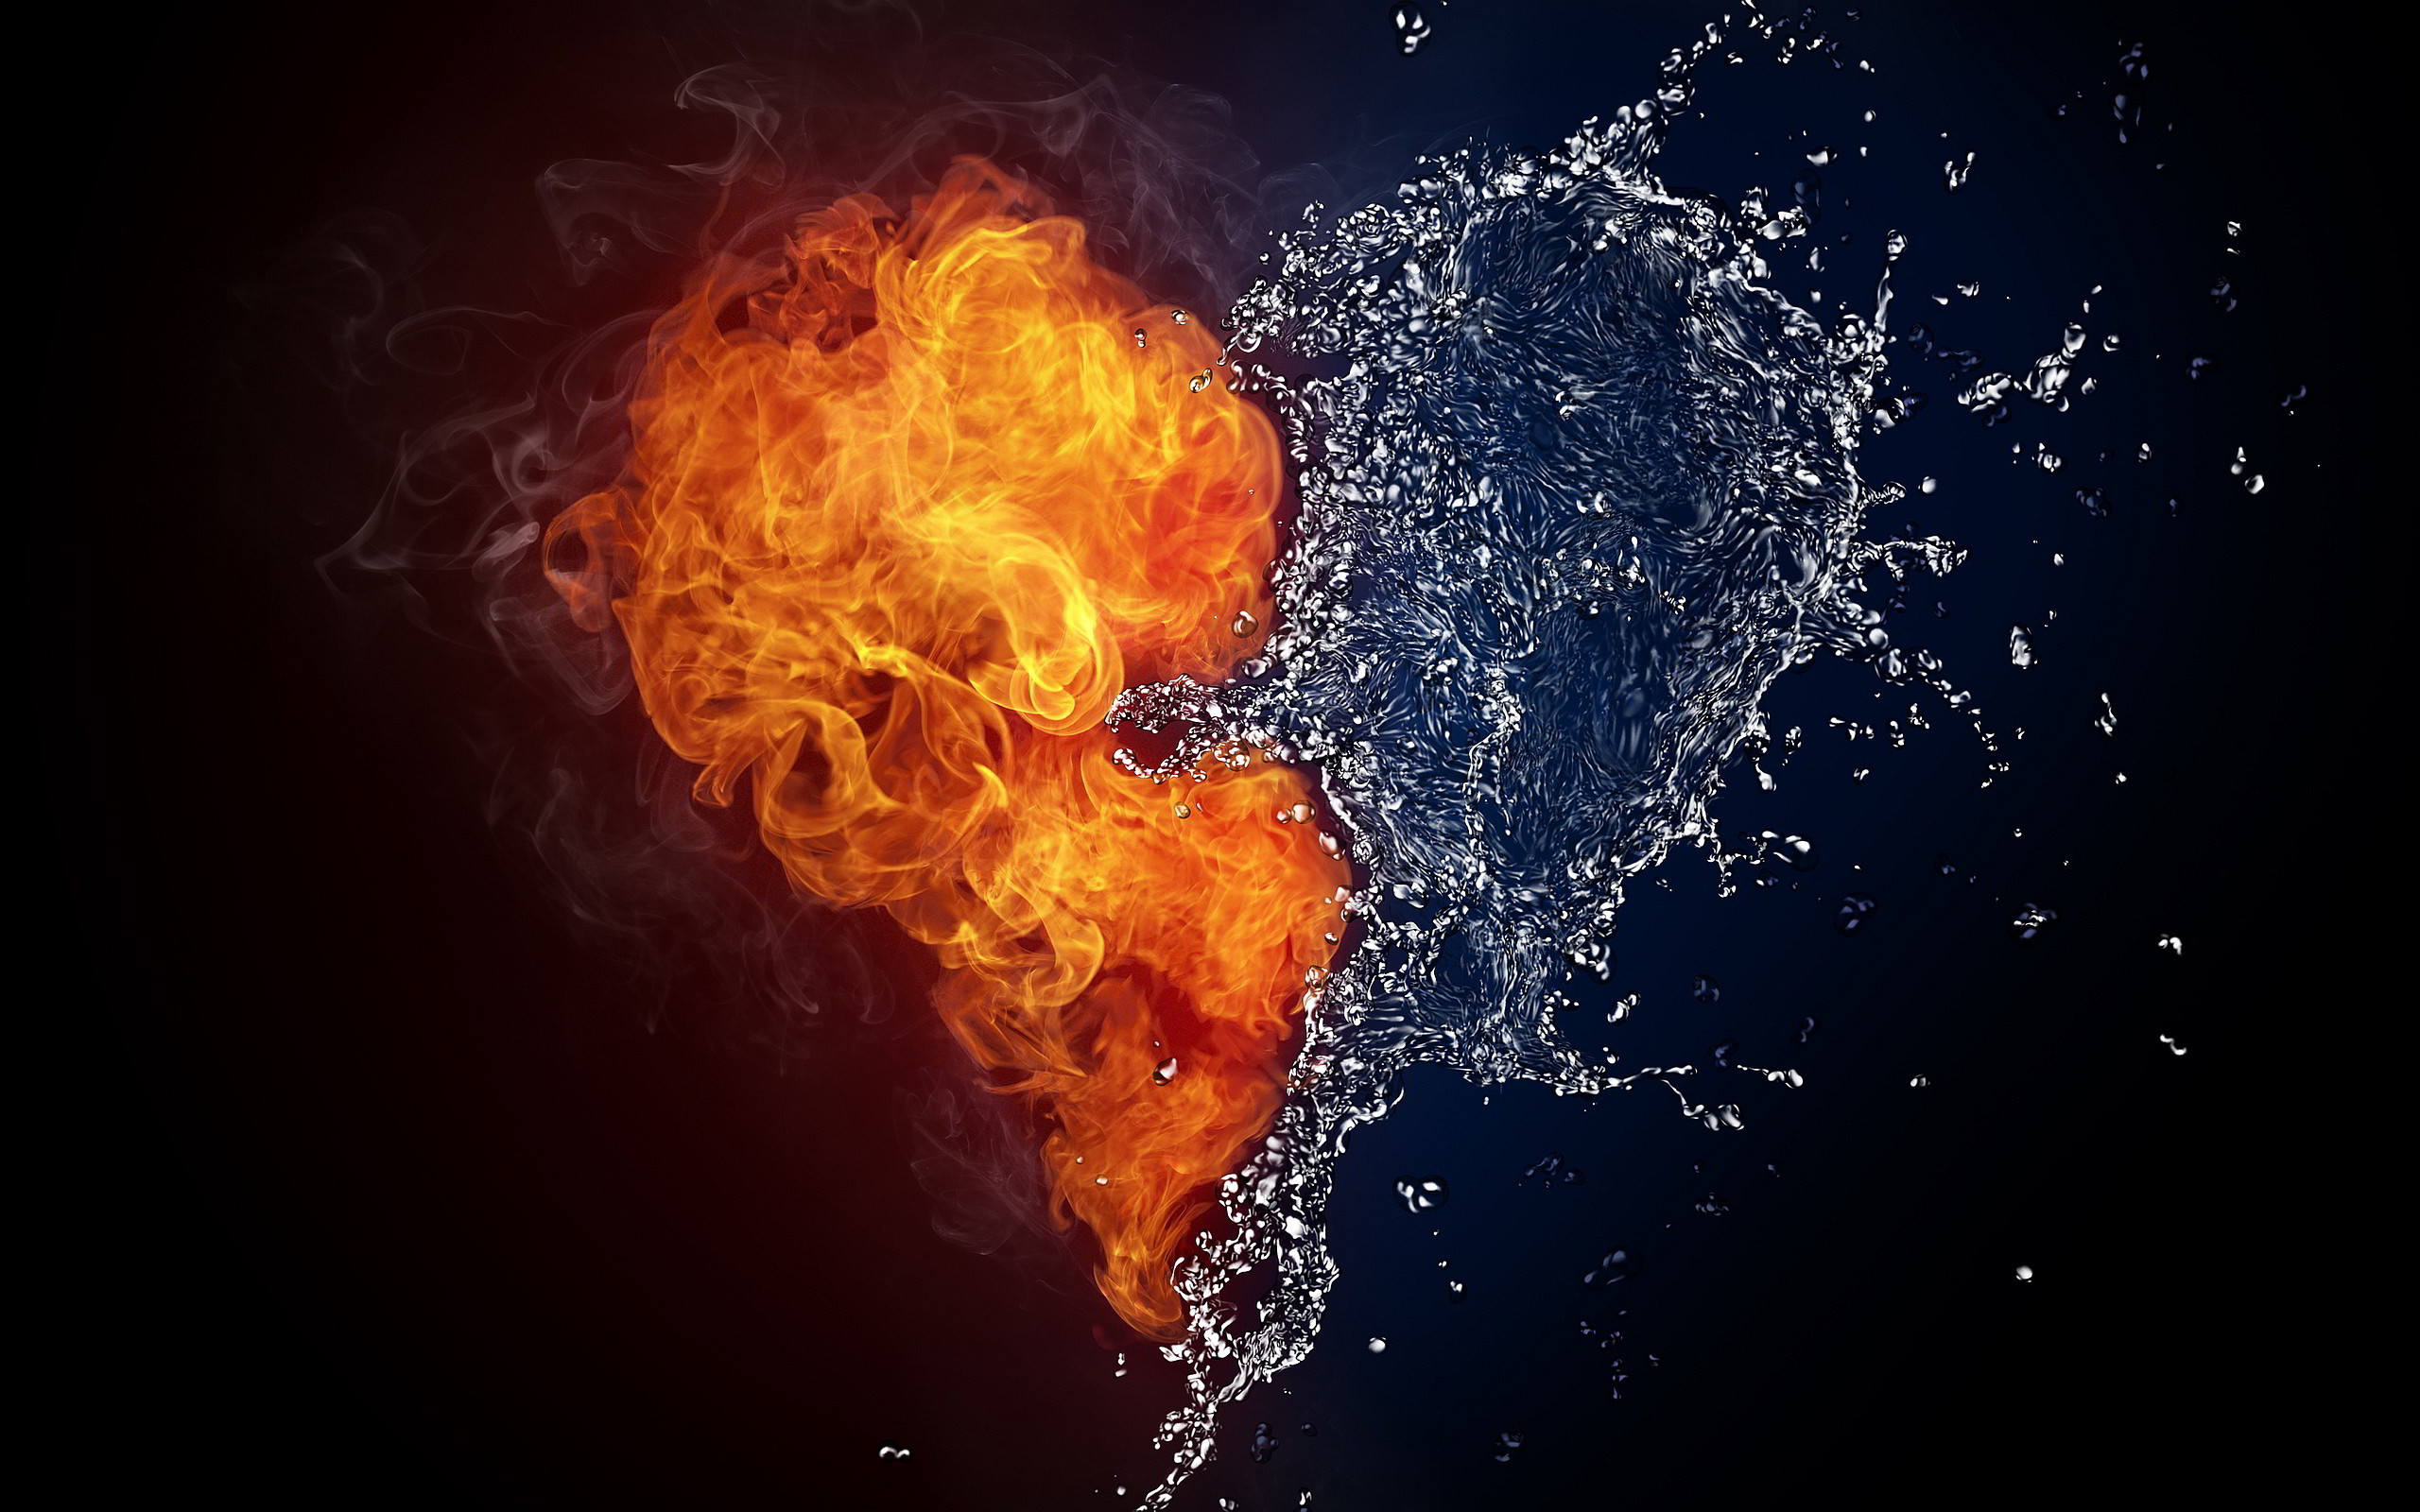 2560x1600 ... Fire Water Heart Wallpapers Pictures Photos Images ...